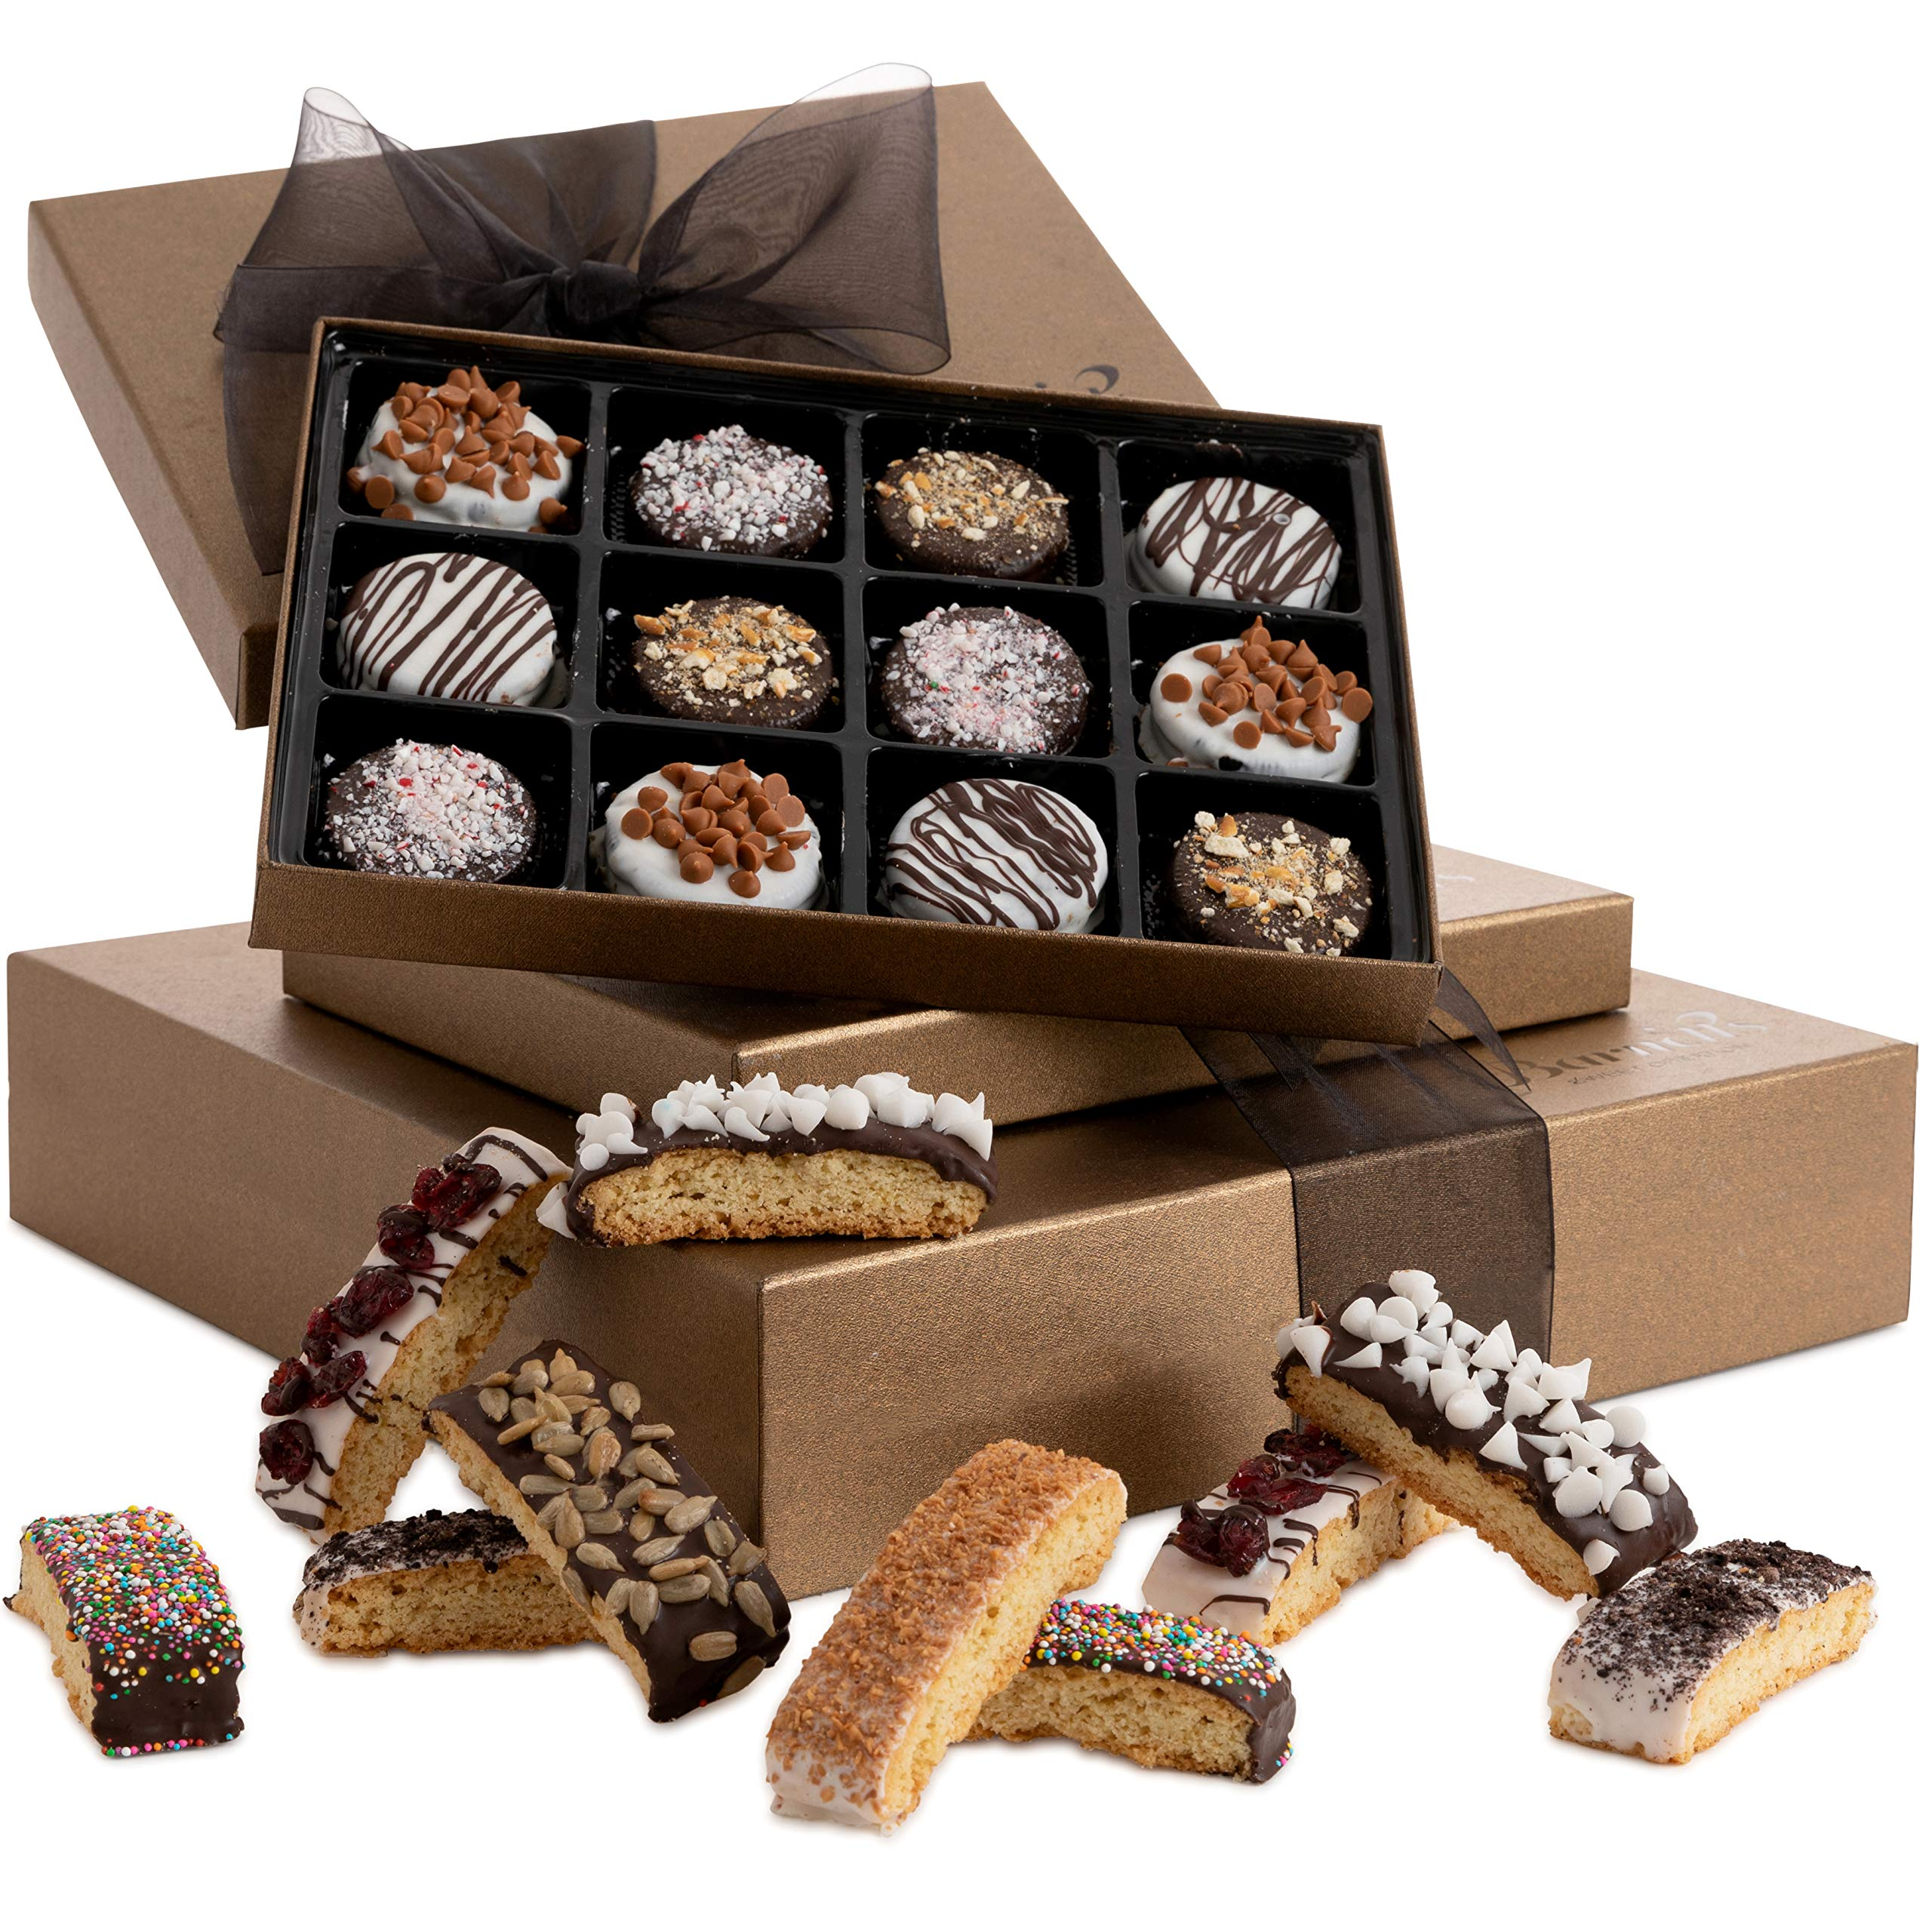 Barnett's Chocolate Cookies & Biscotti Gift Basket Tower, Unique Holiday Gourmet Cookie Gifts, Christmas Food Idea For Him Her Corporate Men Women Families Thanksgiving Valentines Fathers Mothers Day by Barnett's Fine Biscotti (Image #1)